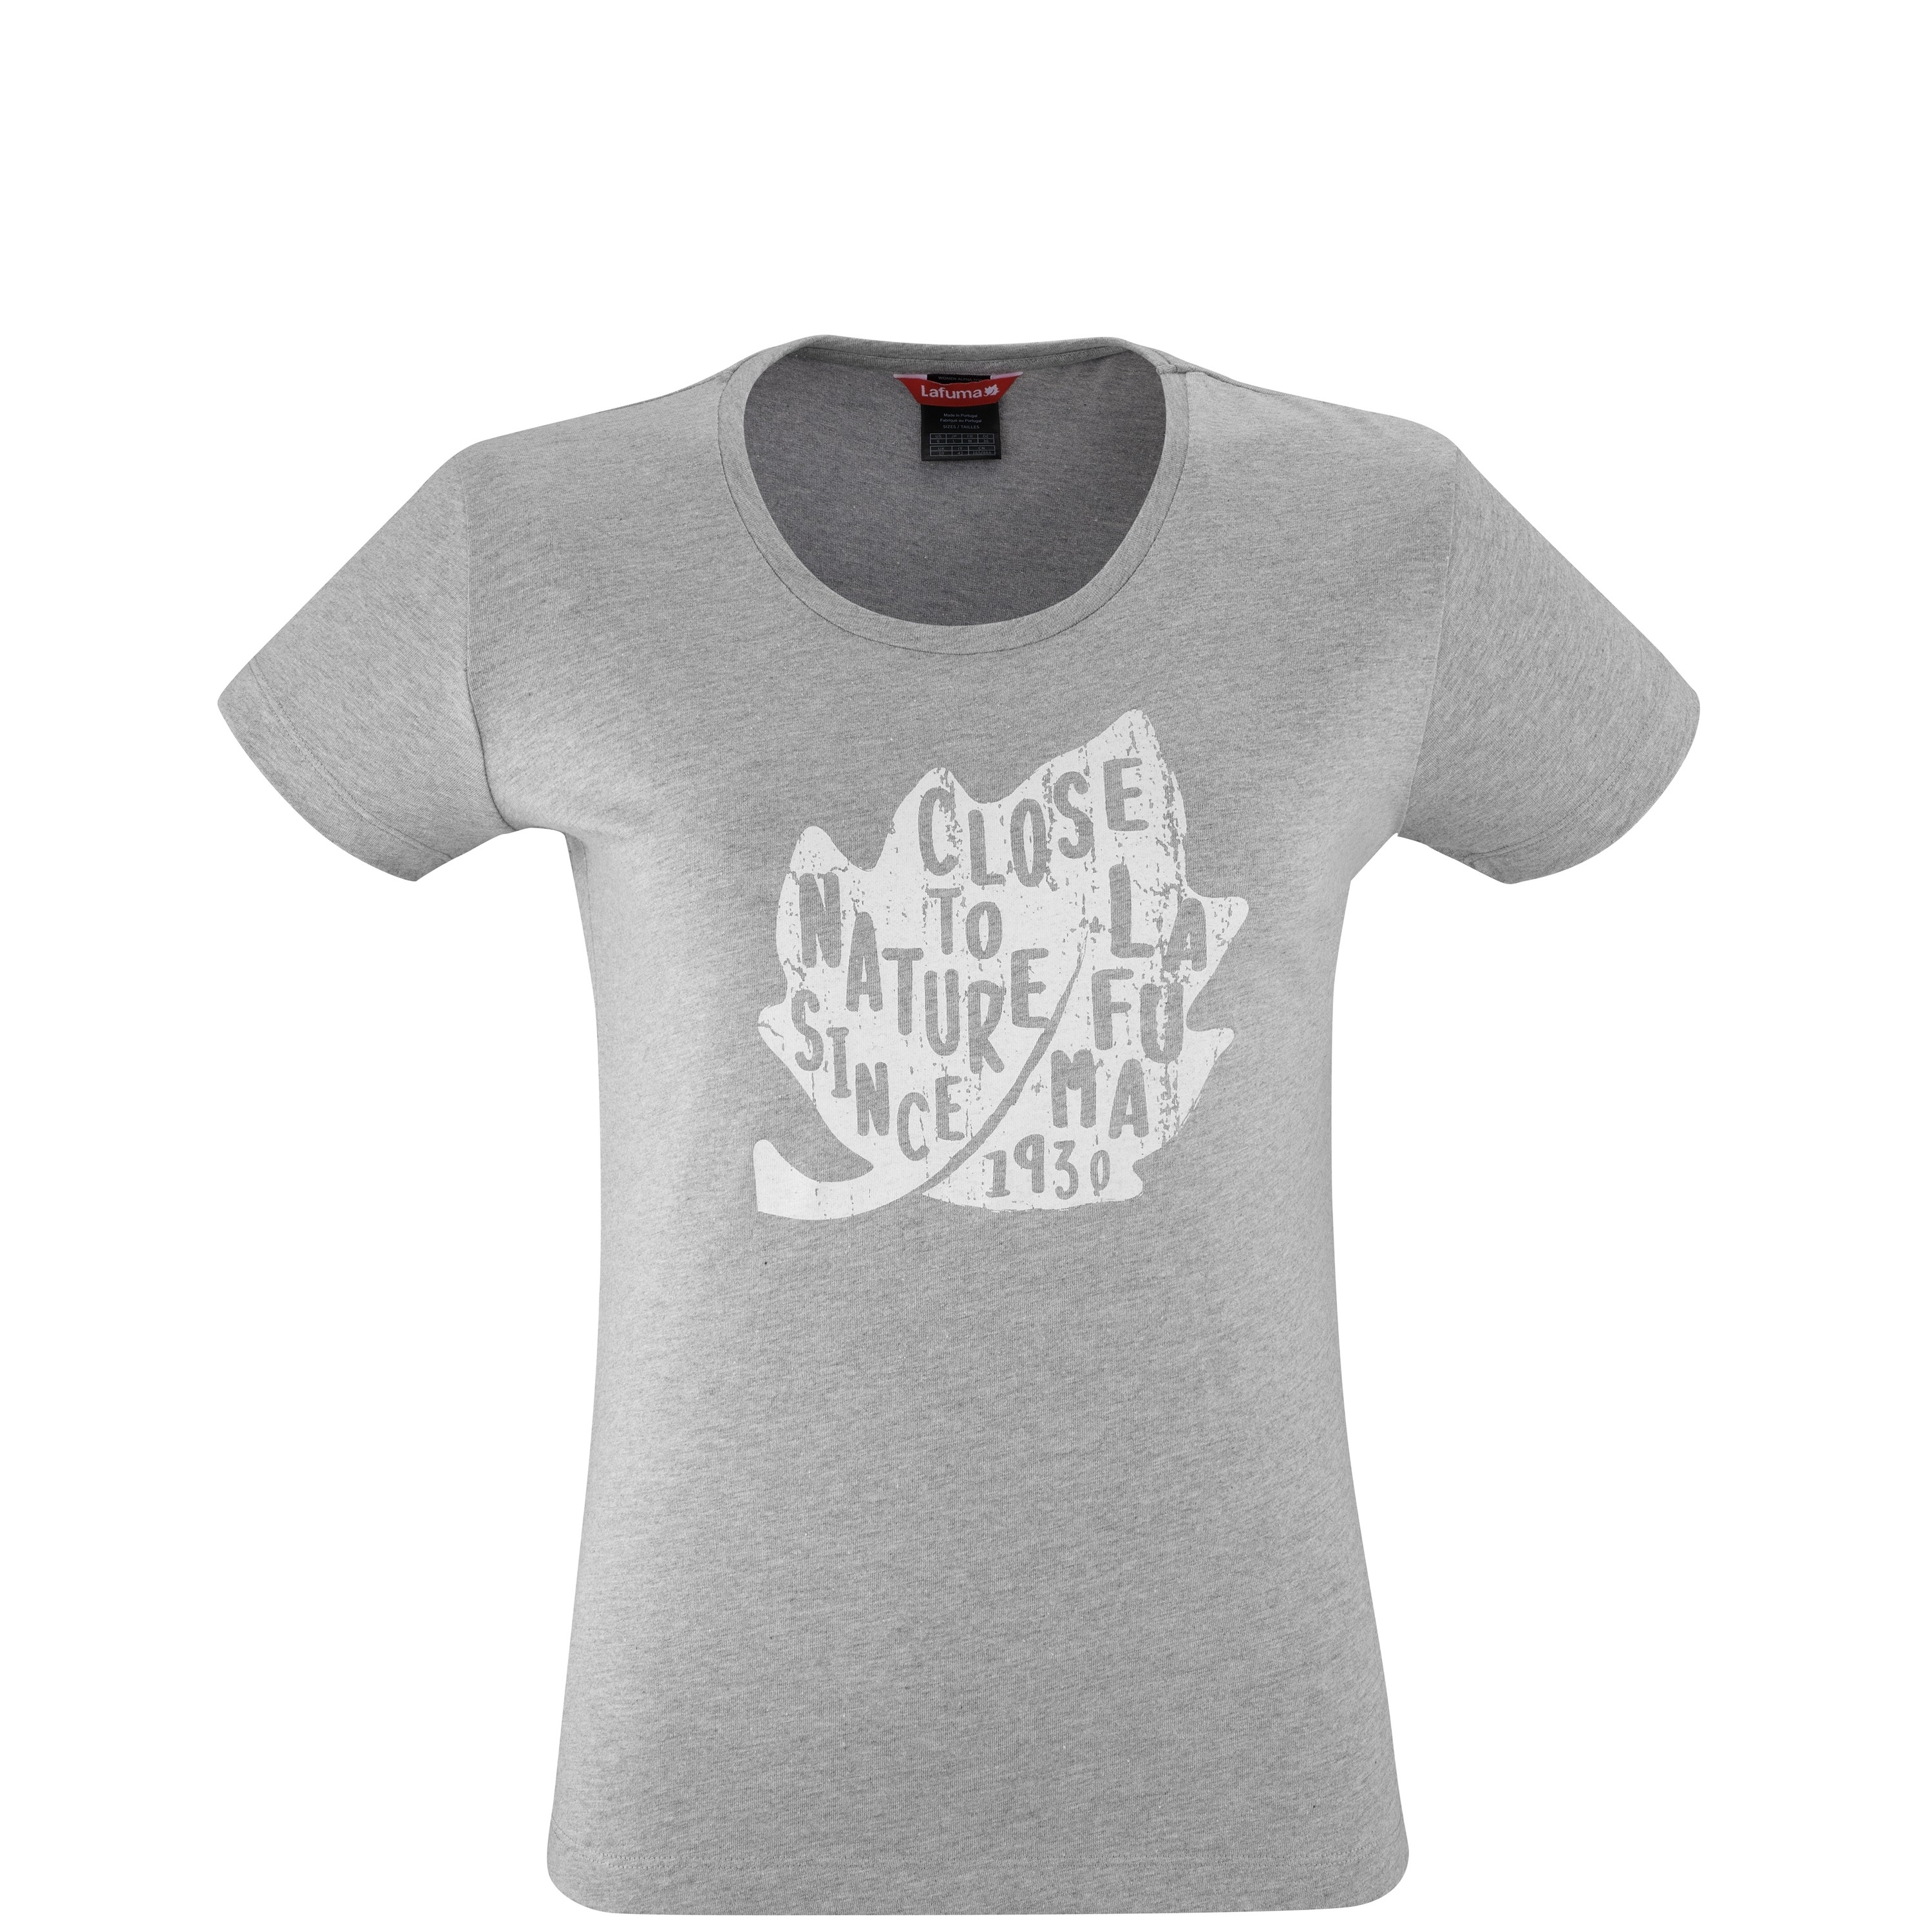 The Pearl polyester T shirt